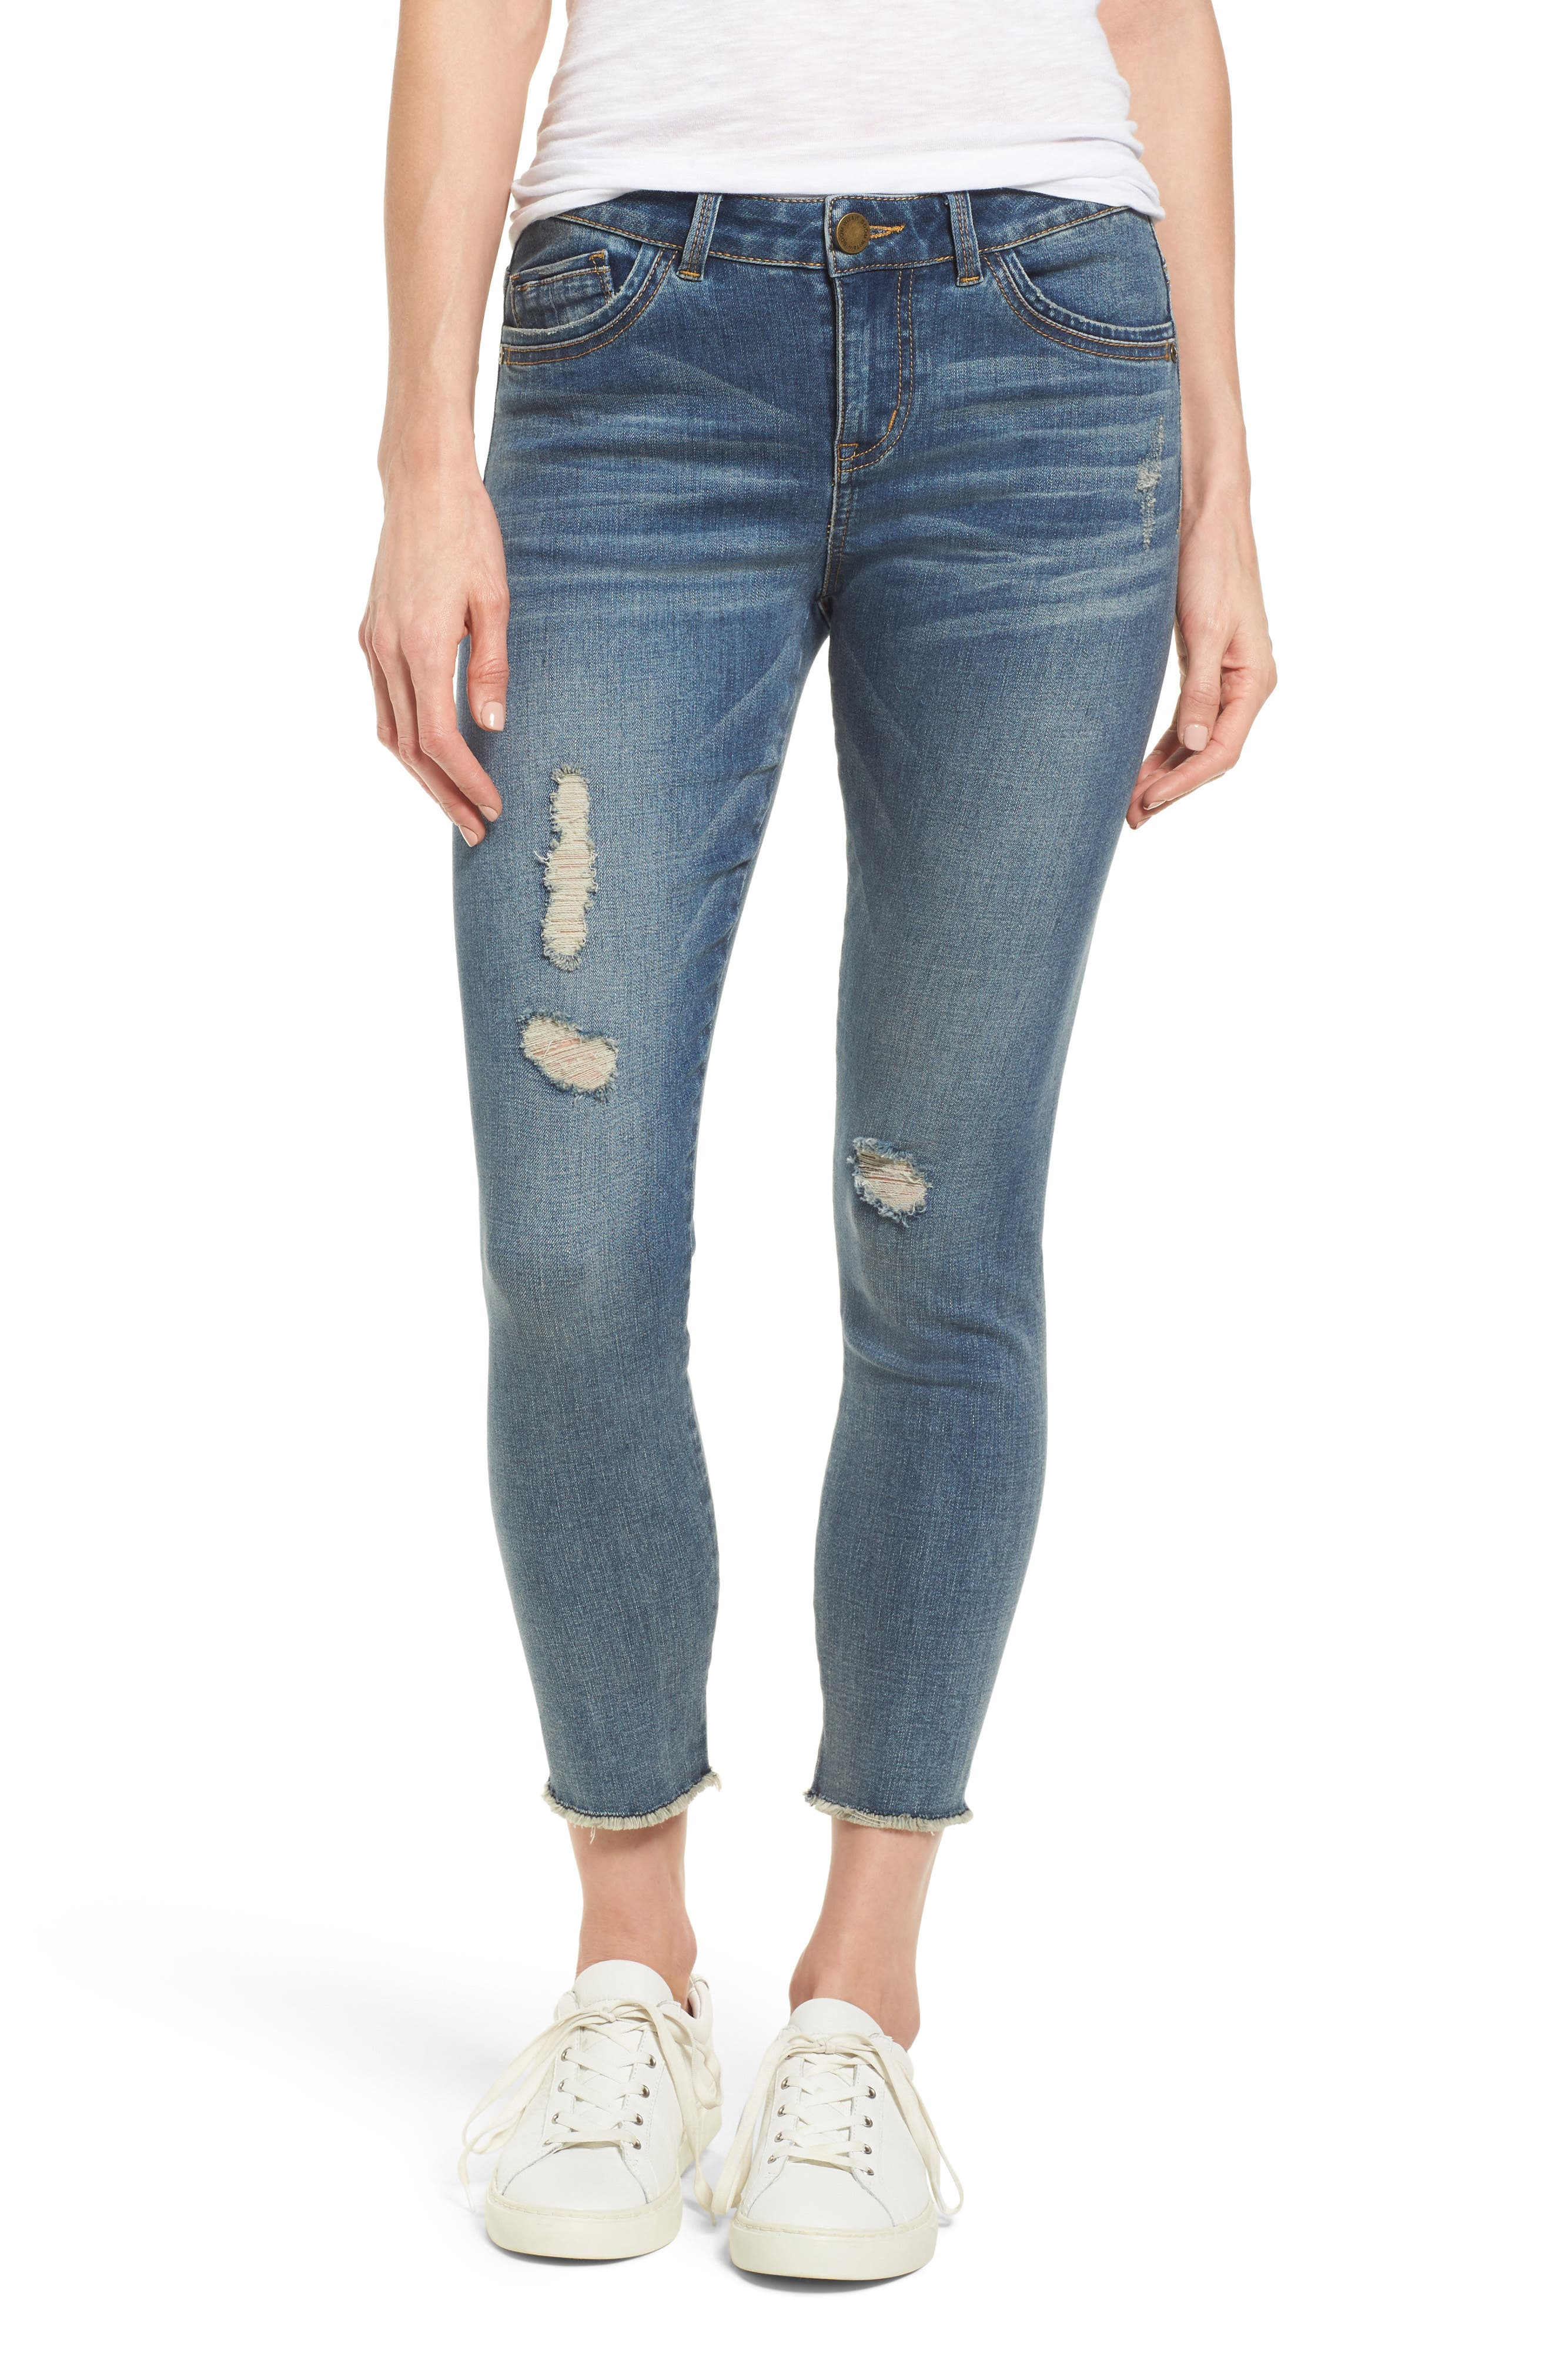 Alternate Image 1 Selected - Wit & Wisdom Ripped Seamless Ankle Jeans (Nordstrom Exclusive) (Regular & Petite)